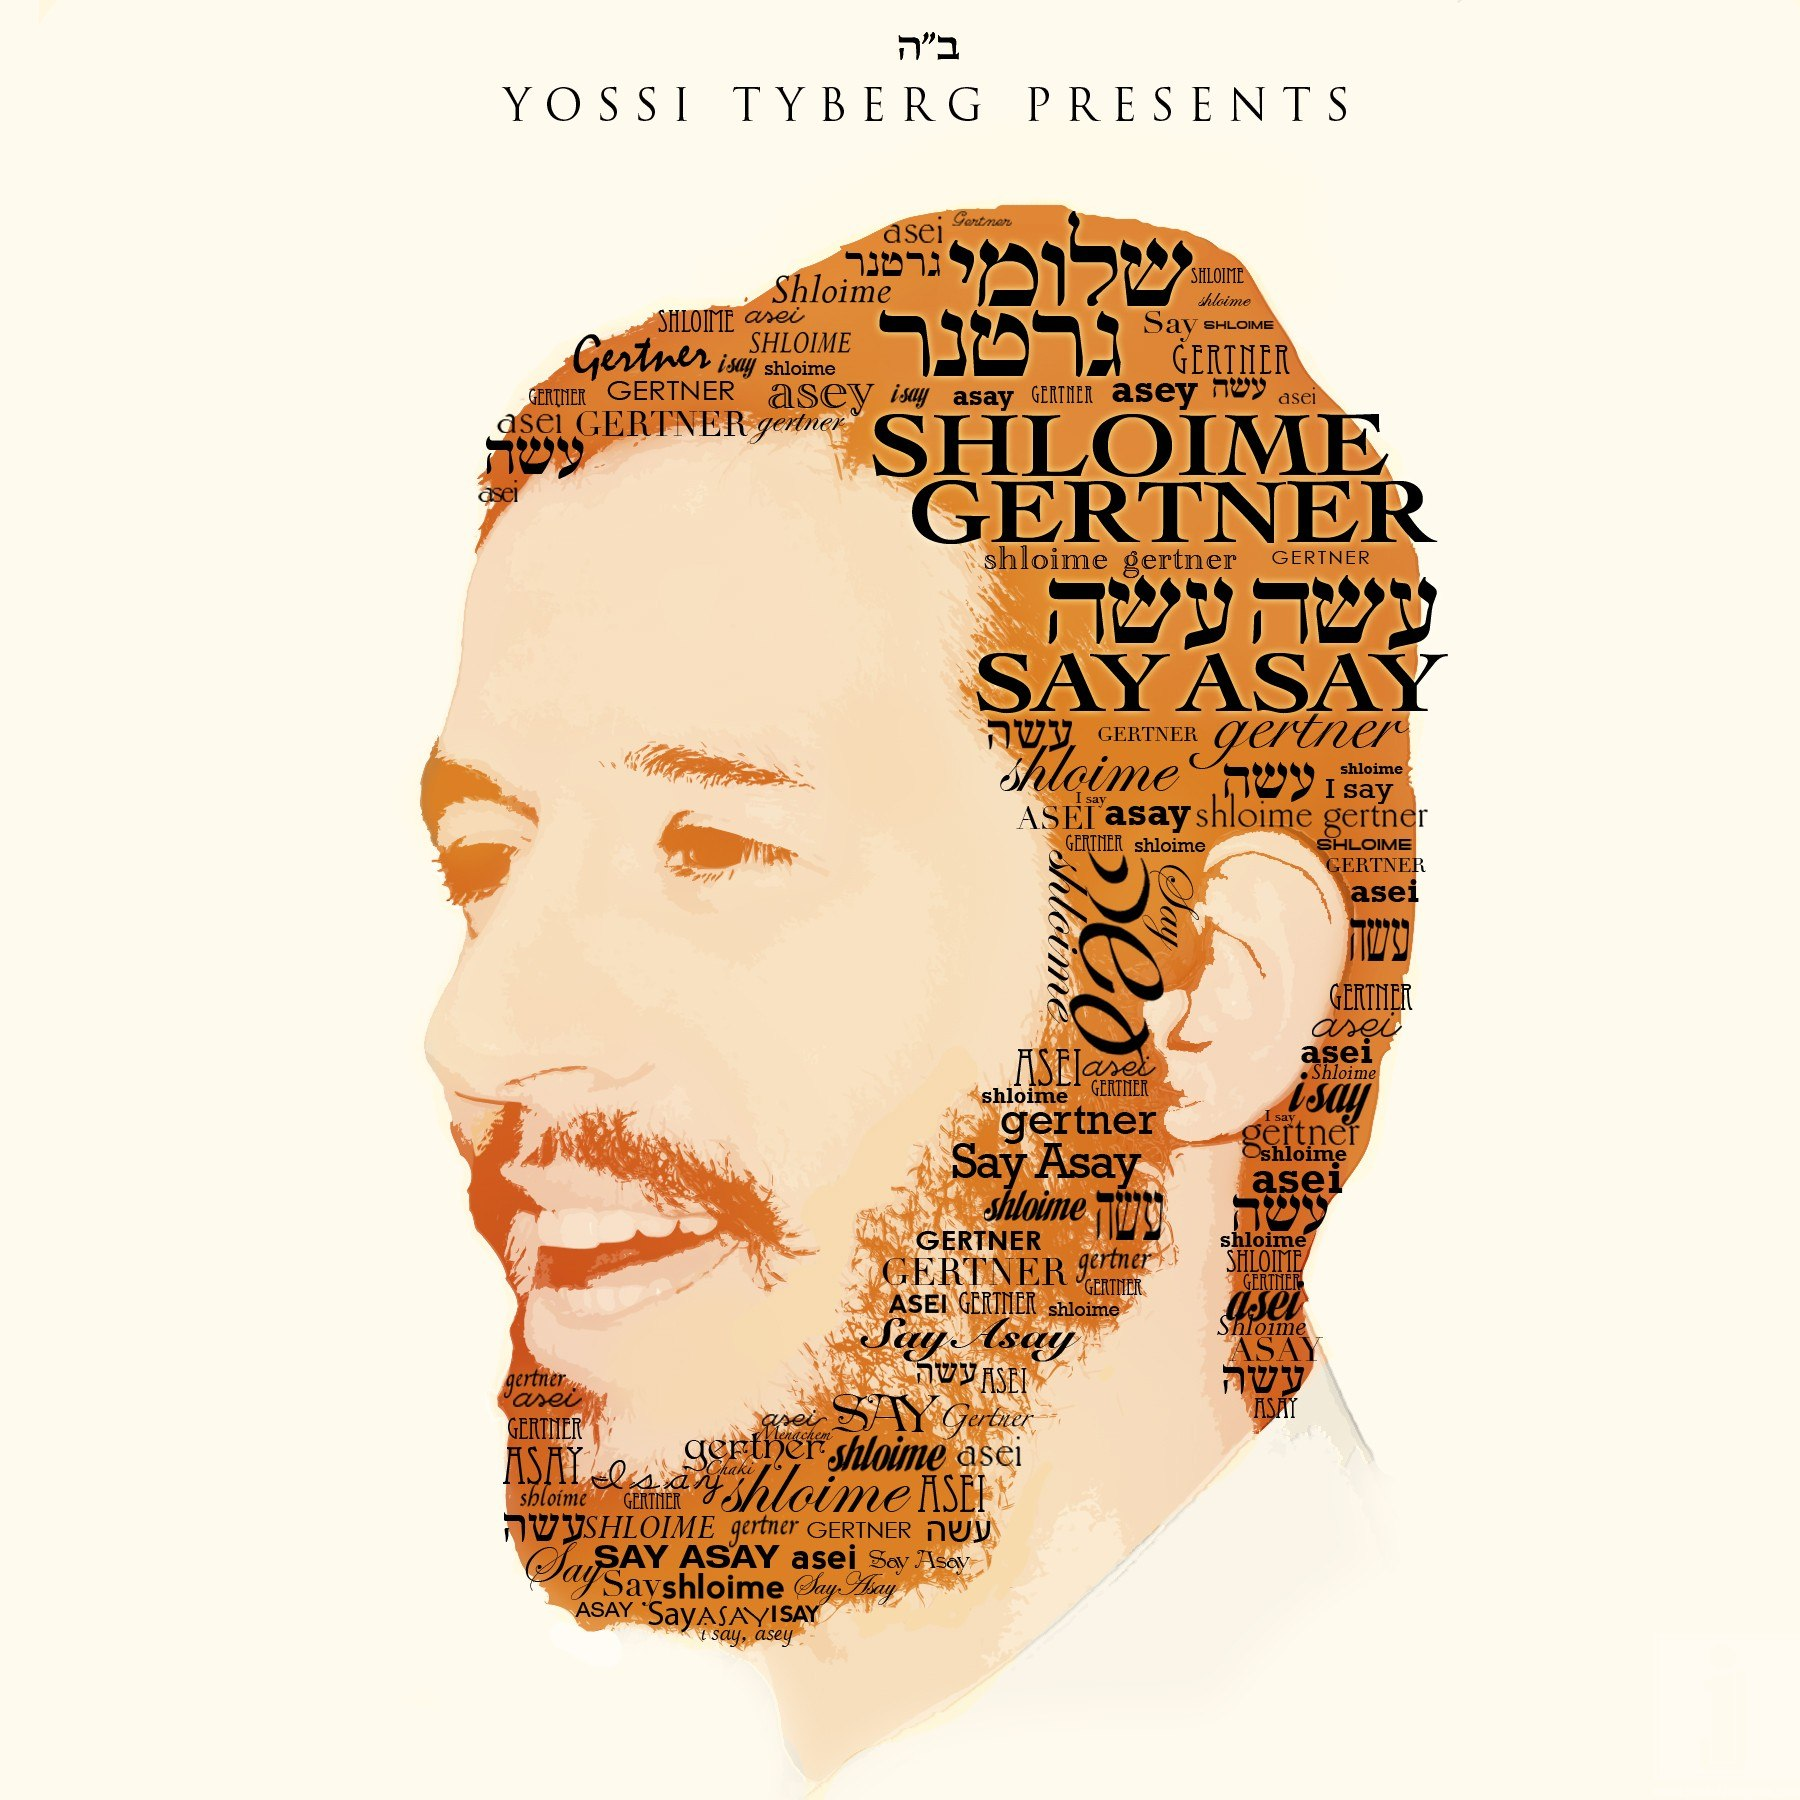 Shloime Gertner - Say Asay (2010)